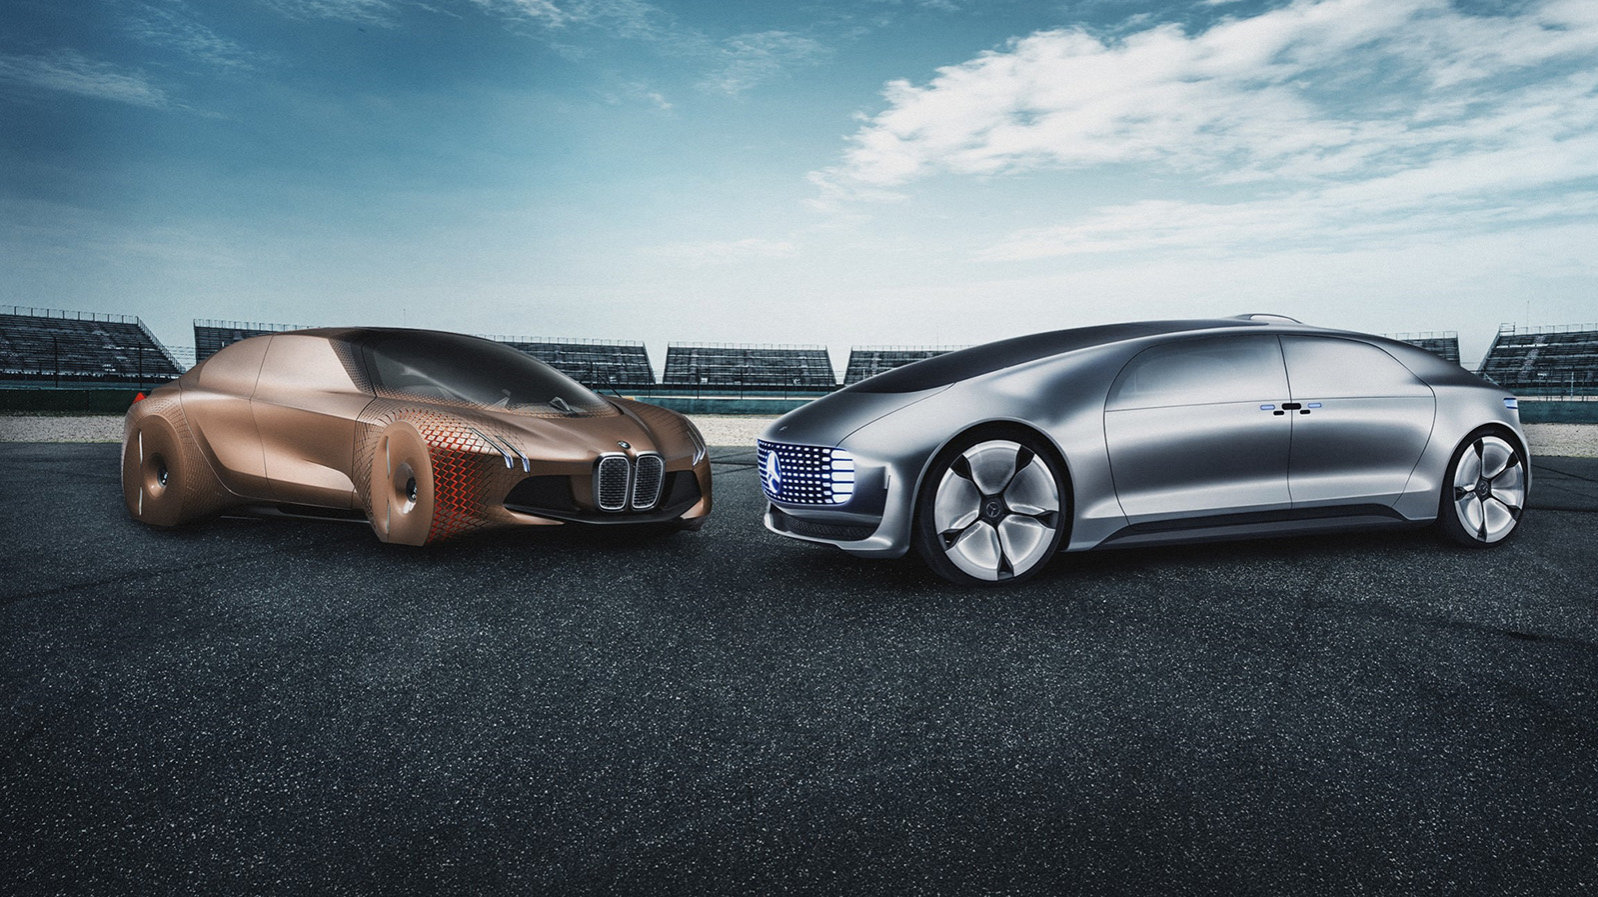 Image by Mercedes/BMW